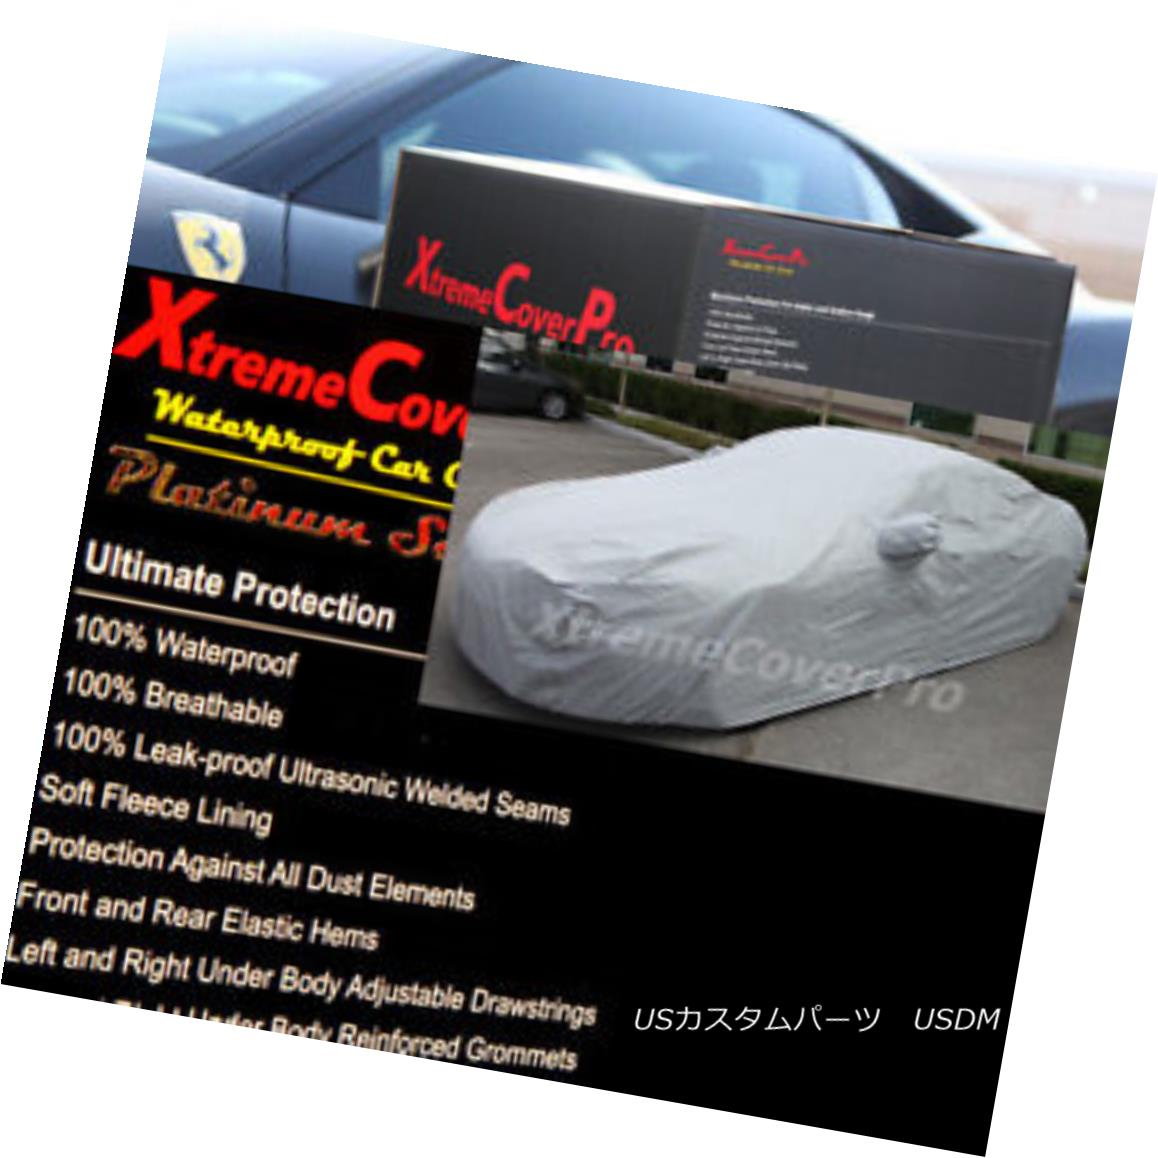 カーカバー 2015 CADILLAC ELR COUPE Waterproof Car Cover w/Mirror Pockets - Gray 2015 CADILLAC ELR COUPEミラーポケット付き防水カーカバー - グレー